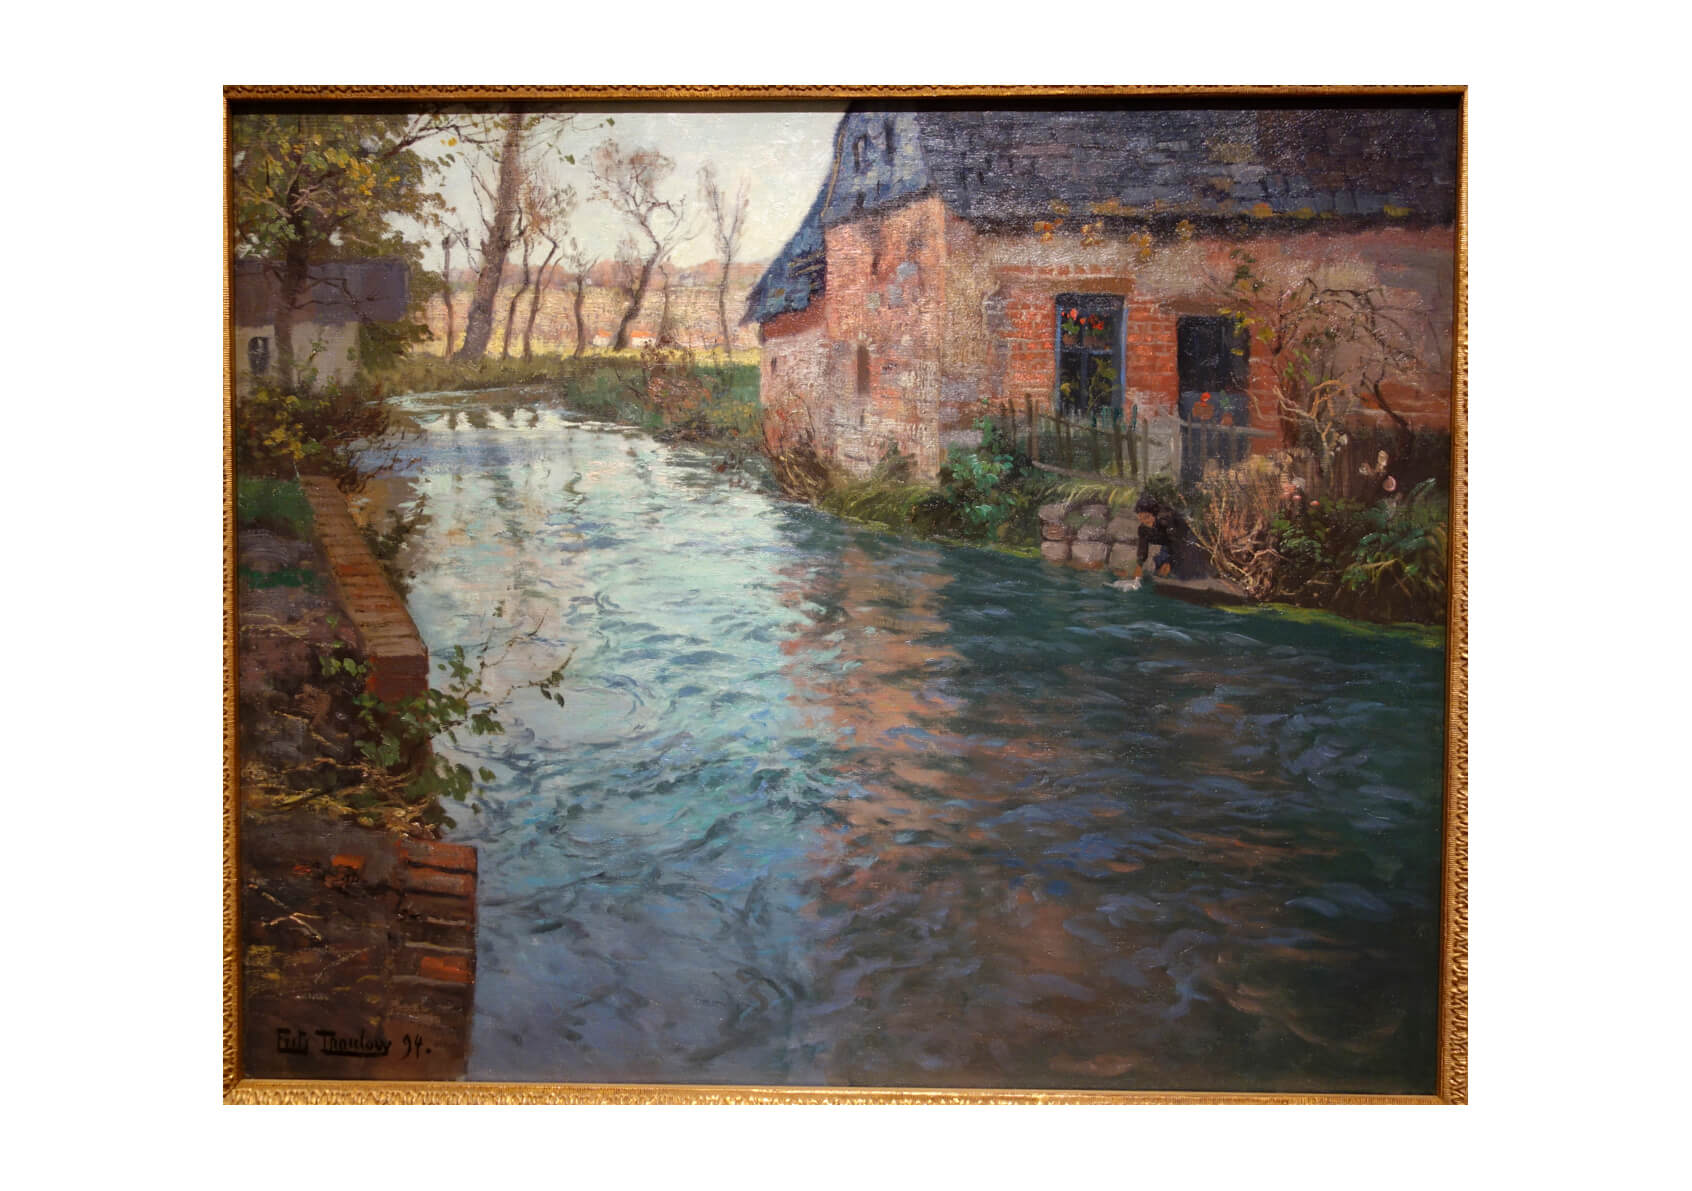 Frits Thaulow - The River in Normandy